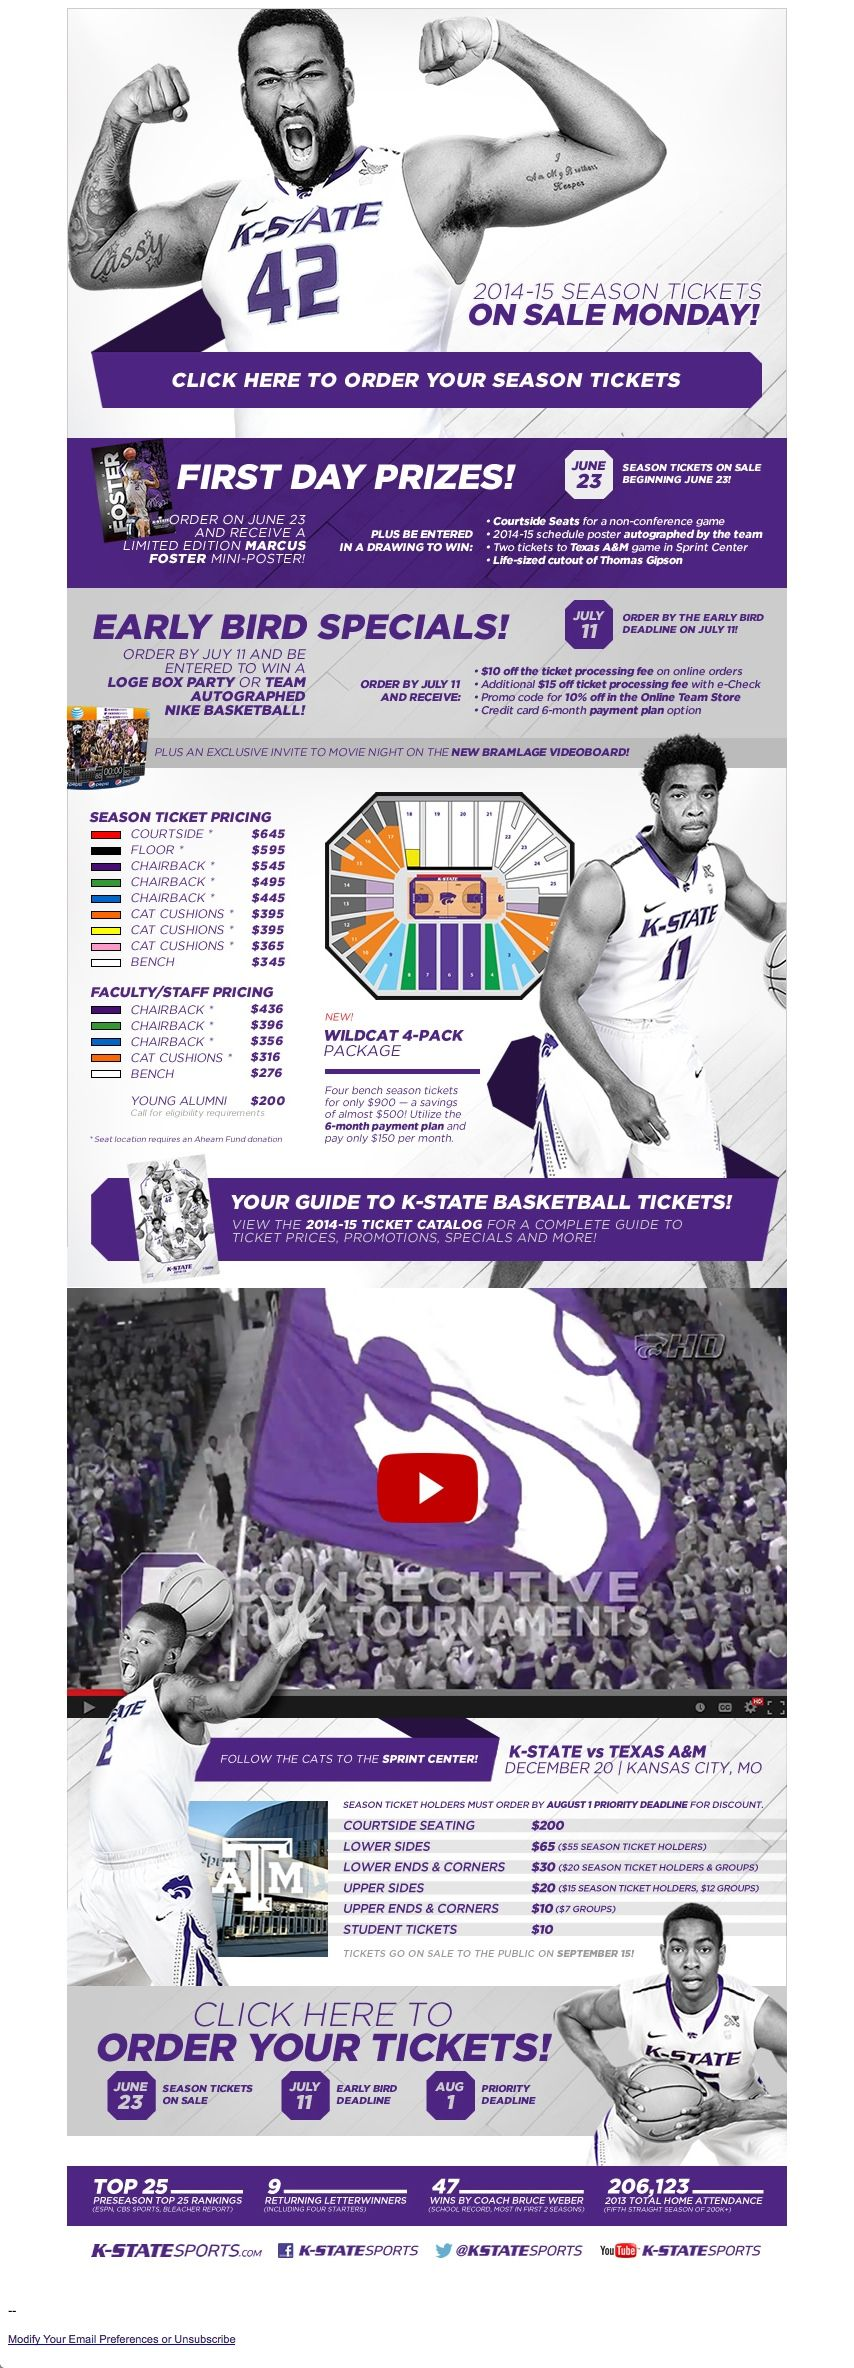 Kansas State Season Ticket Sales Promoting First Day Prizes And Early Bird Specials Sports Biz Season Ticket Sports Graphics